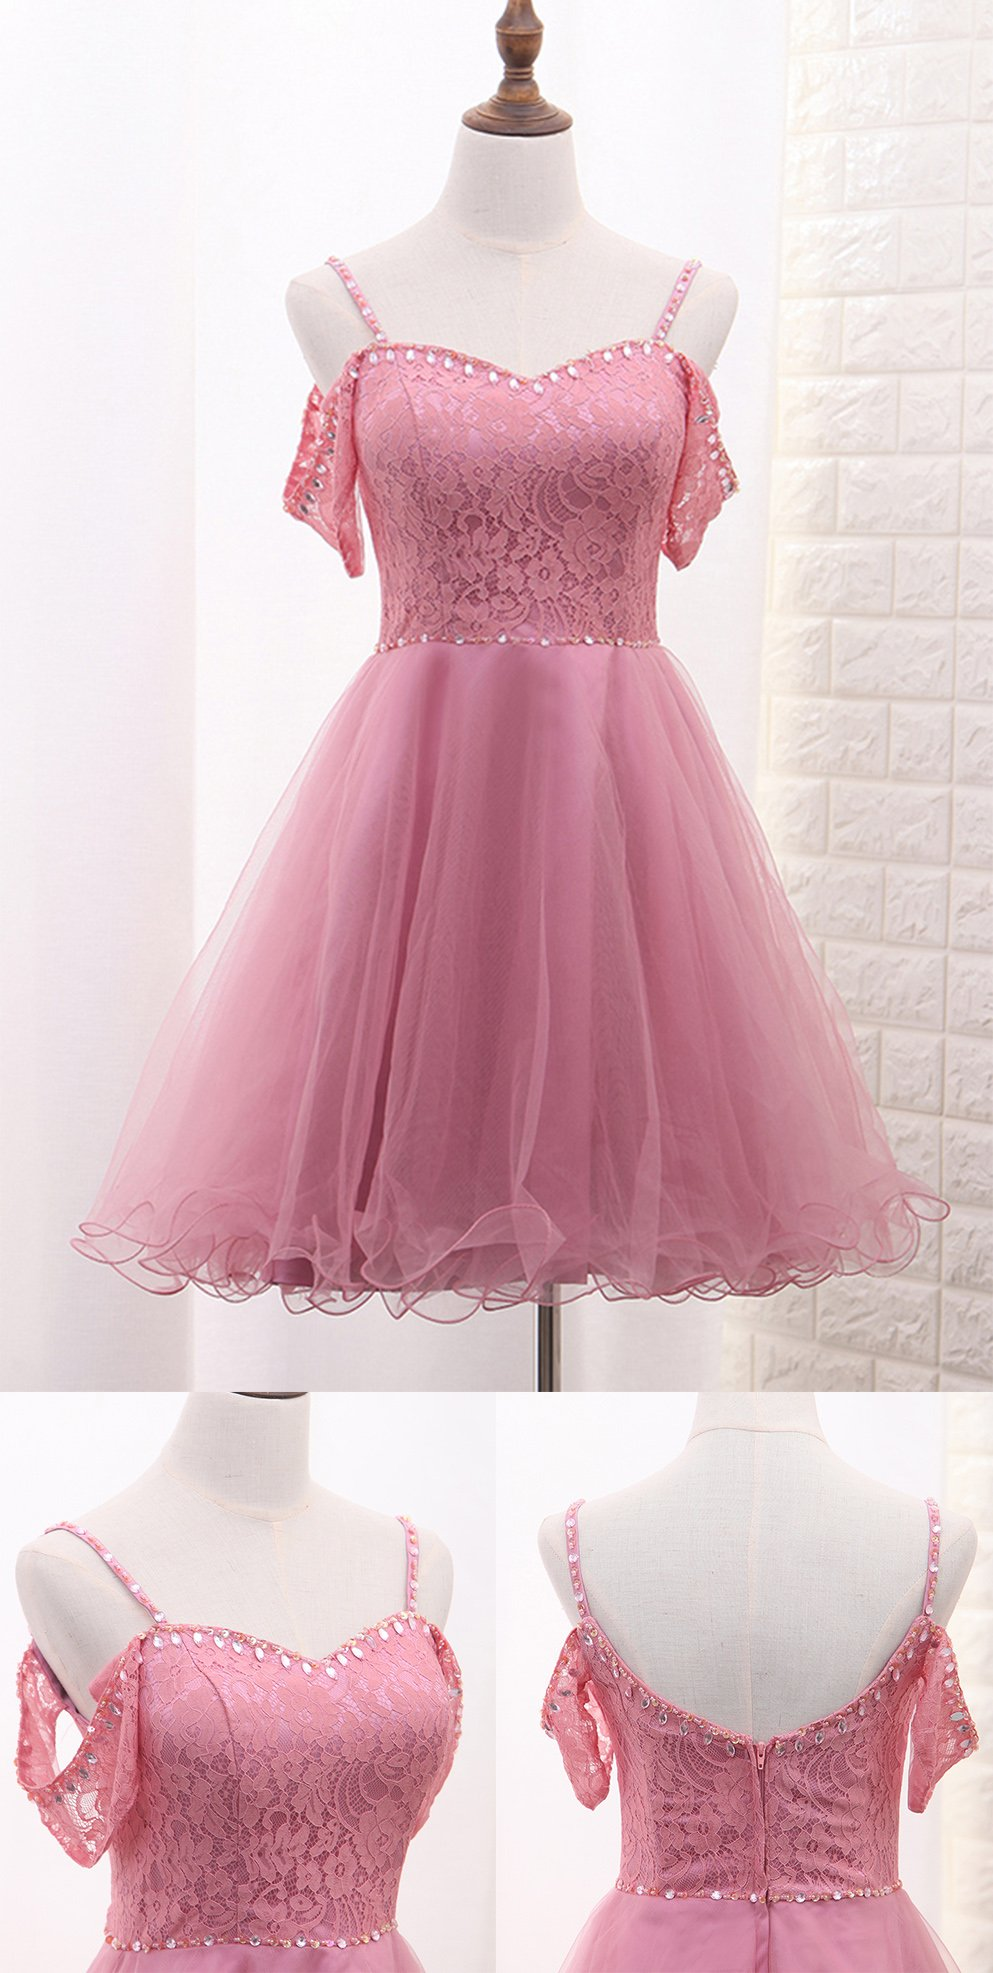 Chic Tulle Lace Spaghetti Strap With Beading Homecoming Dress M485 ...